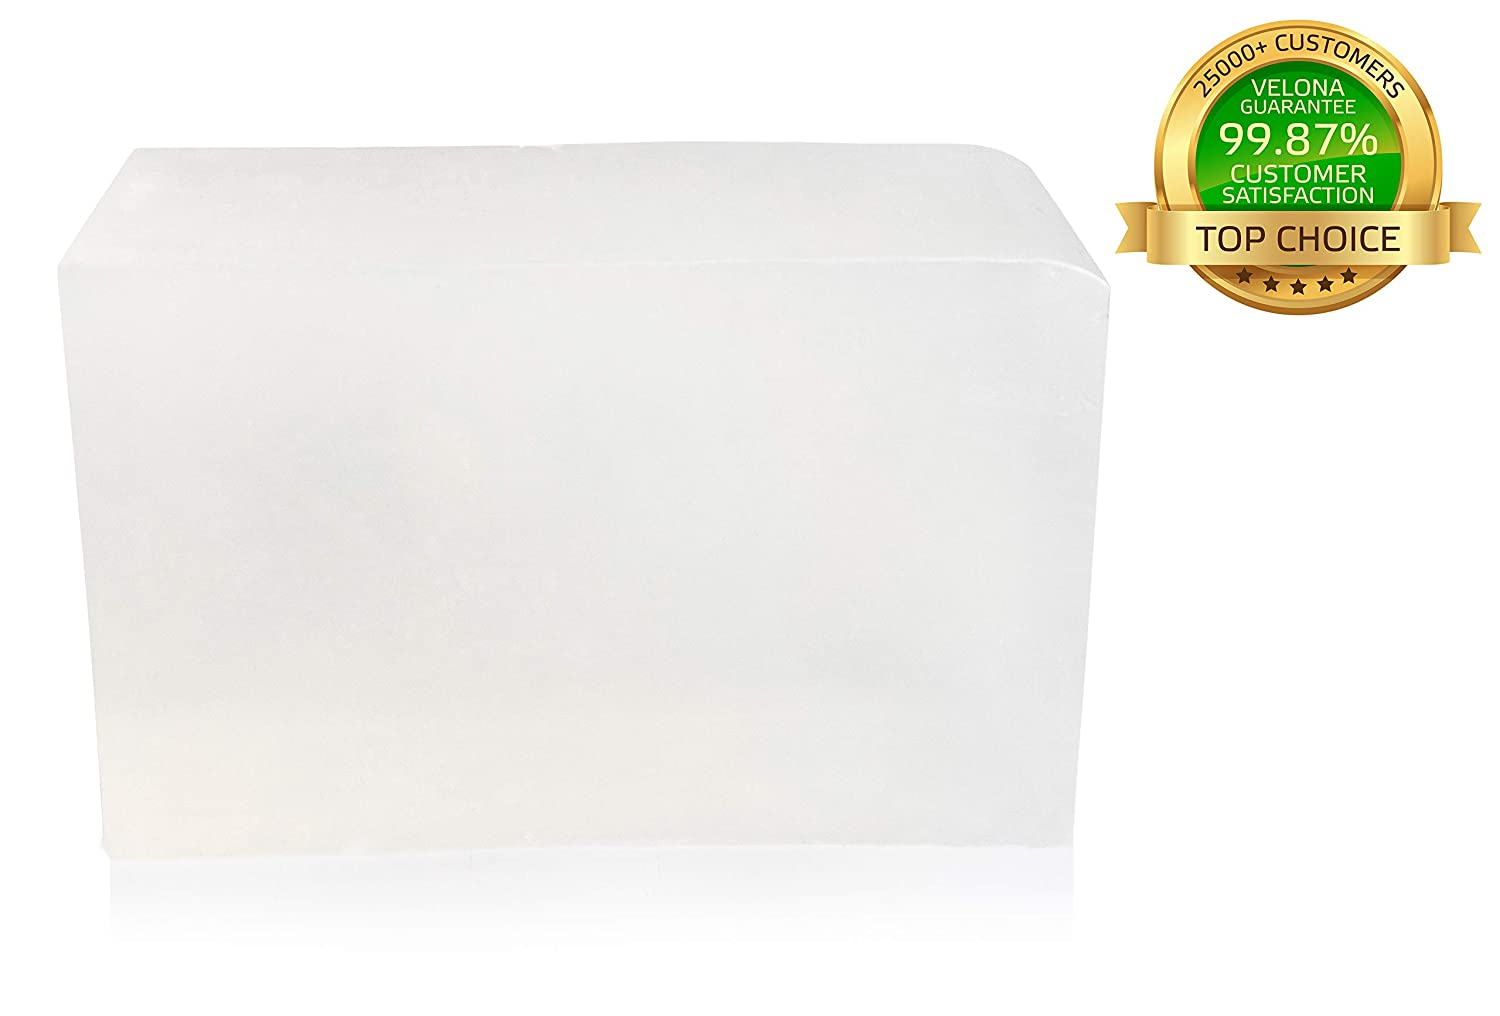 Melt /& Pure all Natural Bar For The Best Result 100/% ORGANIC ULTRA CLEAR TRANSPERENT GLYCERIN Soap Base by Velona Size 10 lb